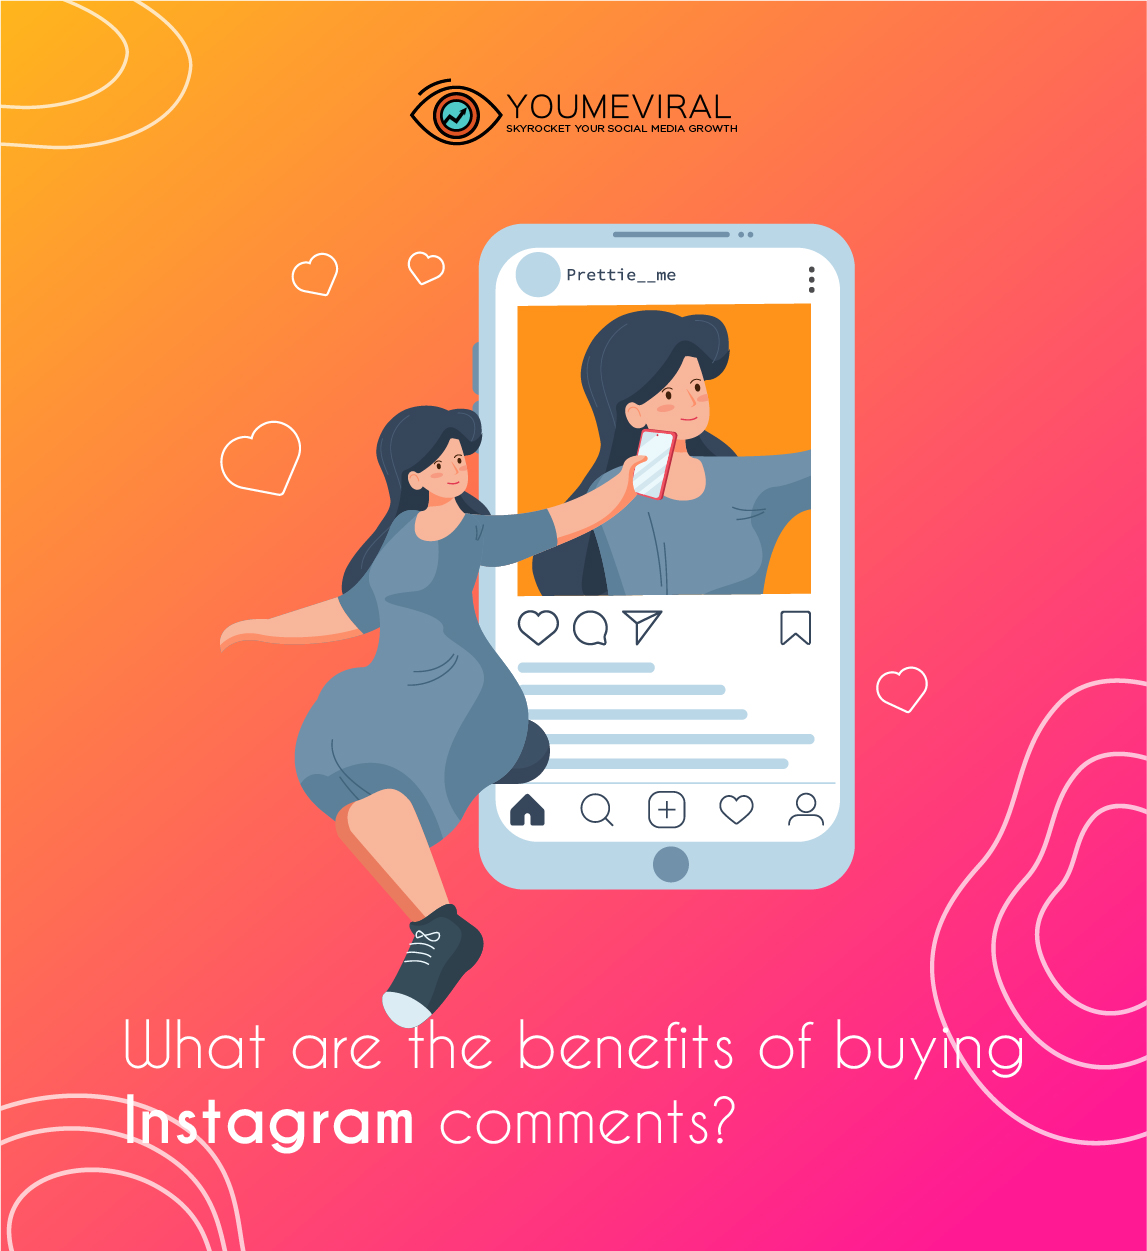 What are the benefits of buying Instagram comments?